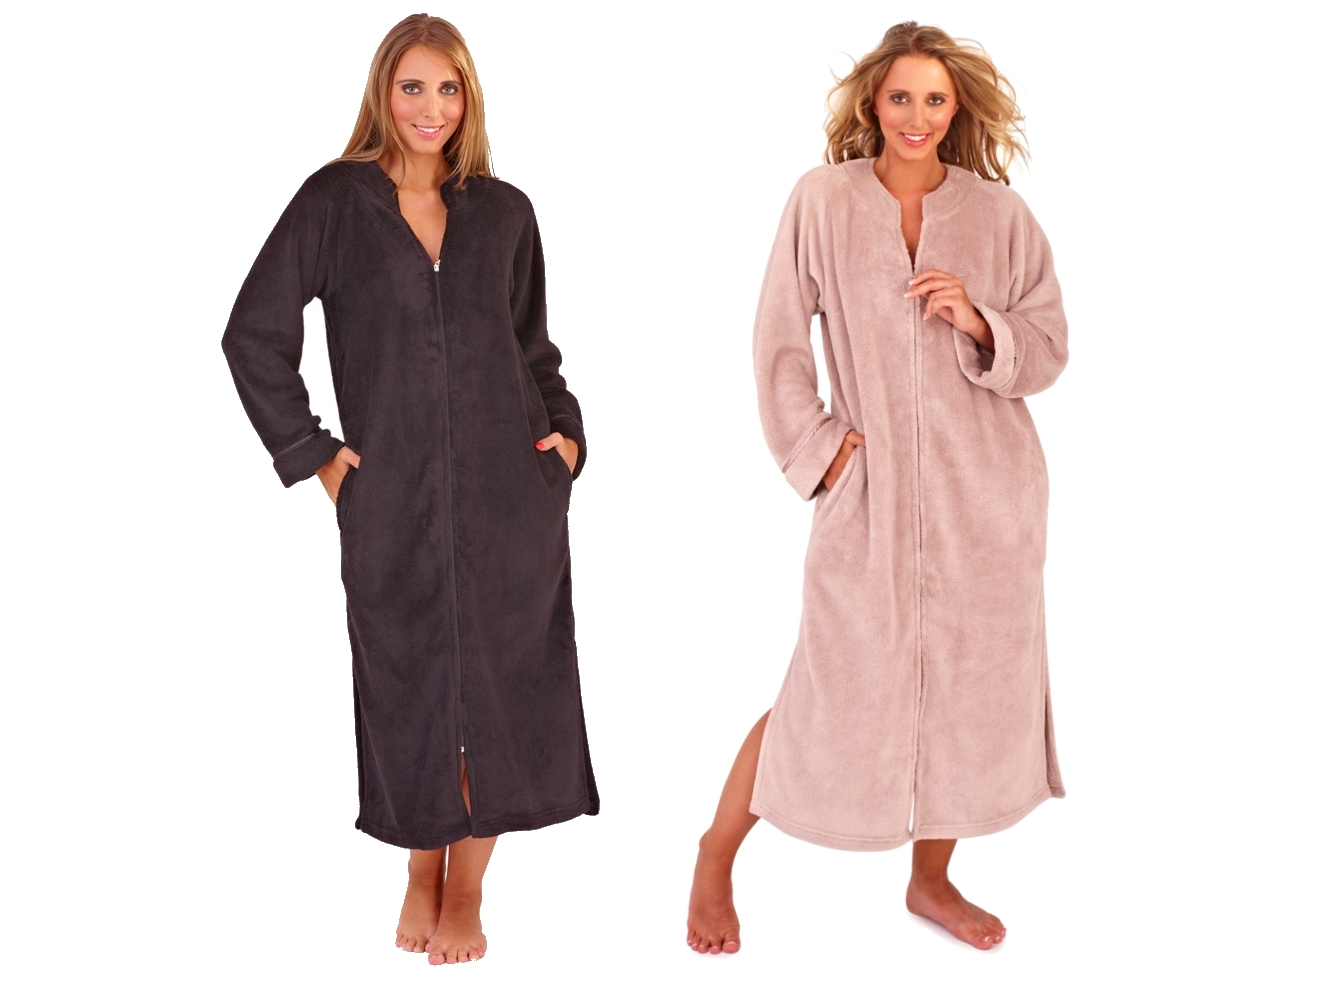 WOMENS FULL LENGTH FLEECE BATH ROBE DRESSING GOWN